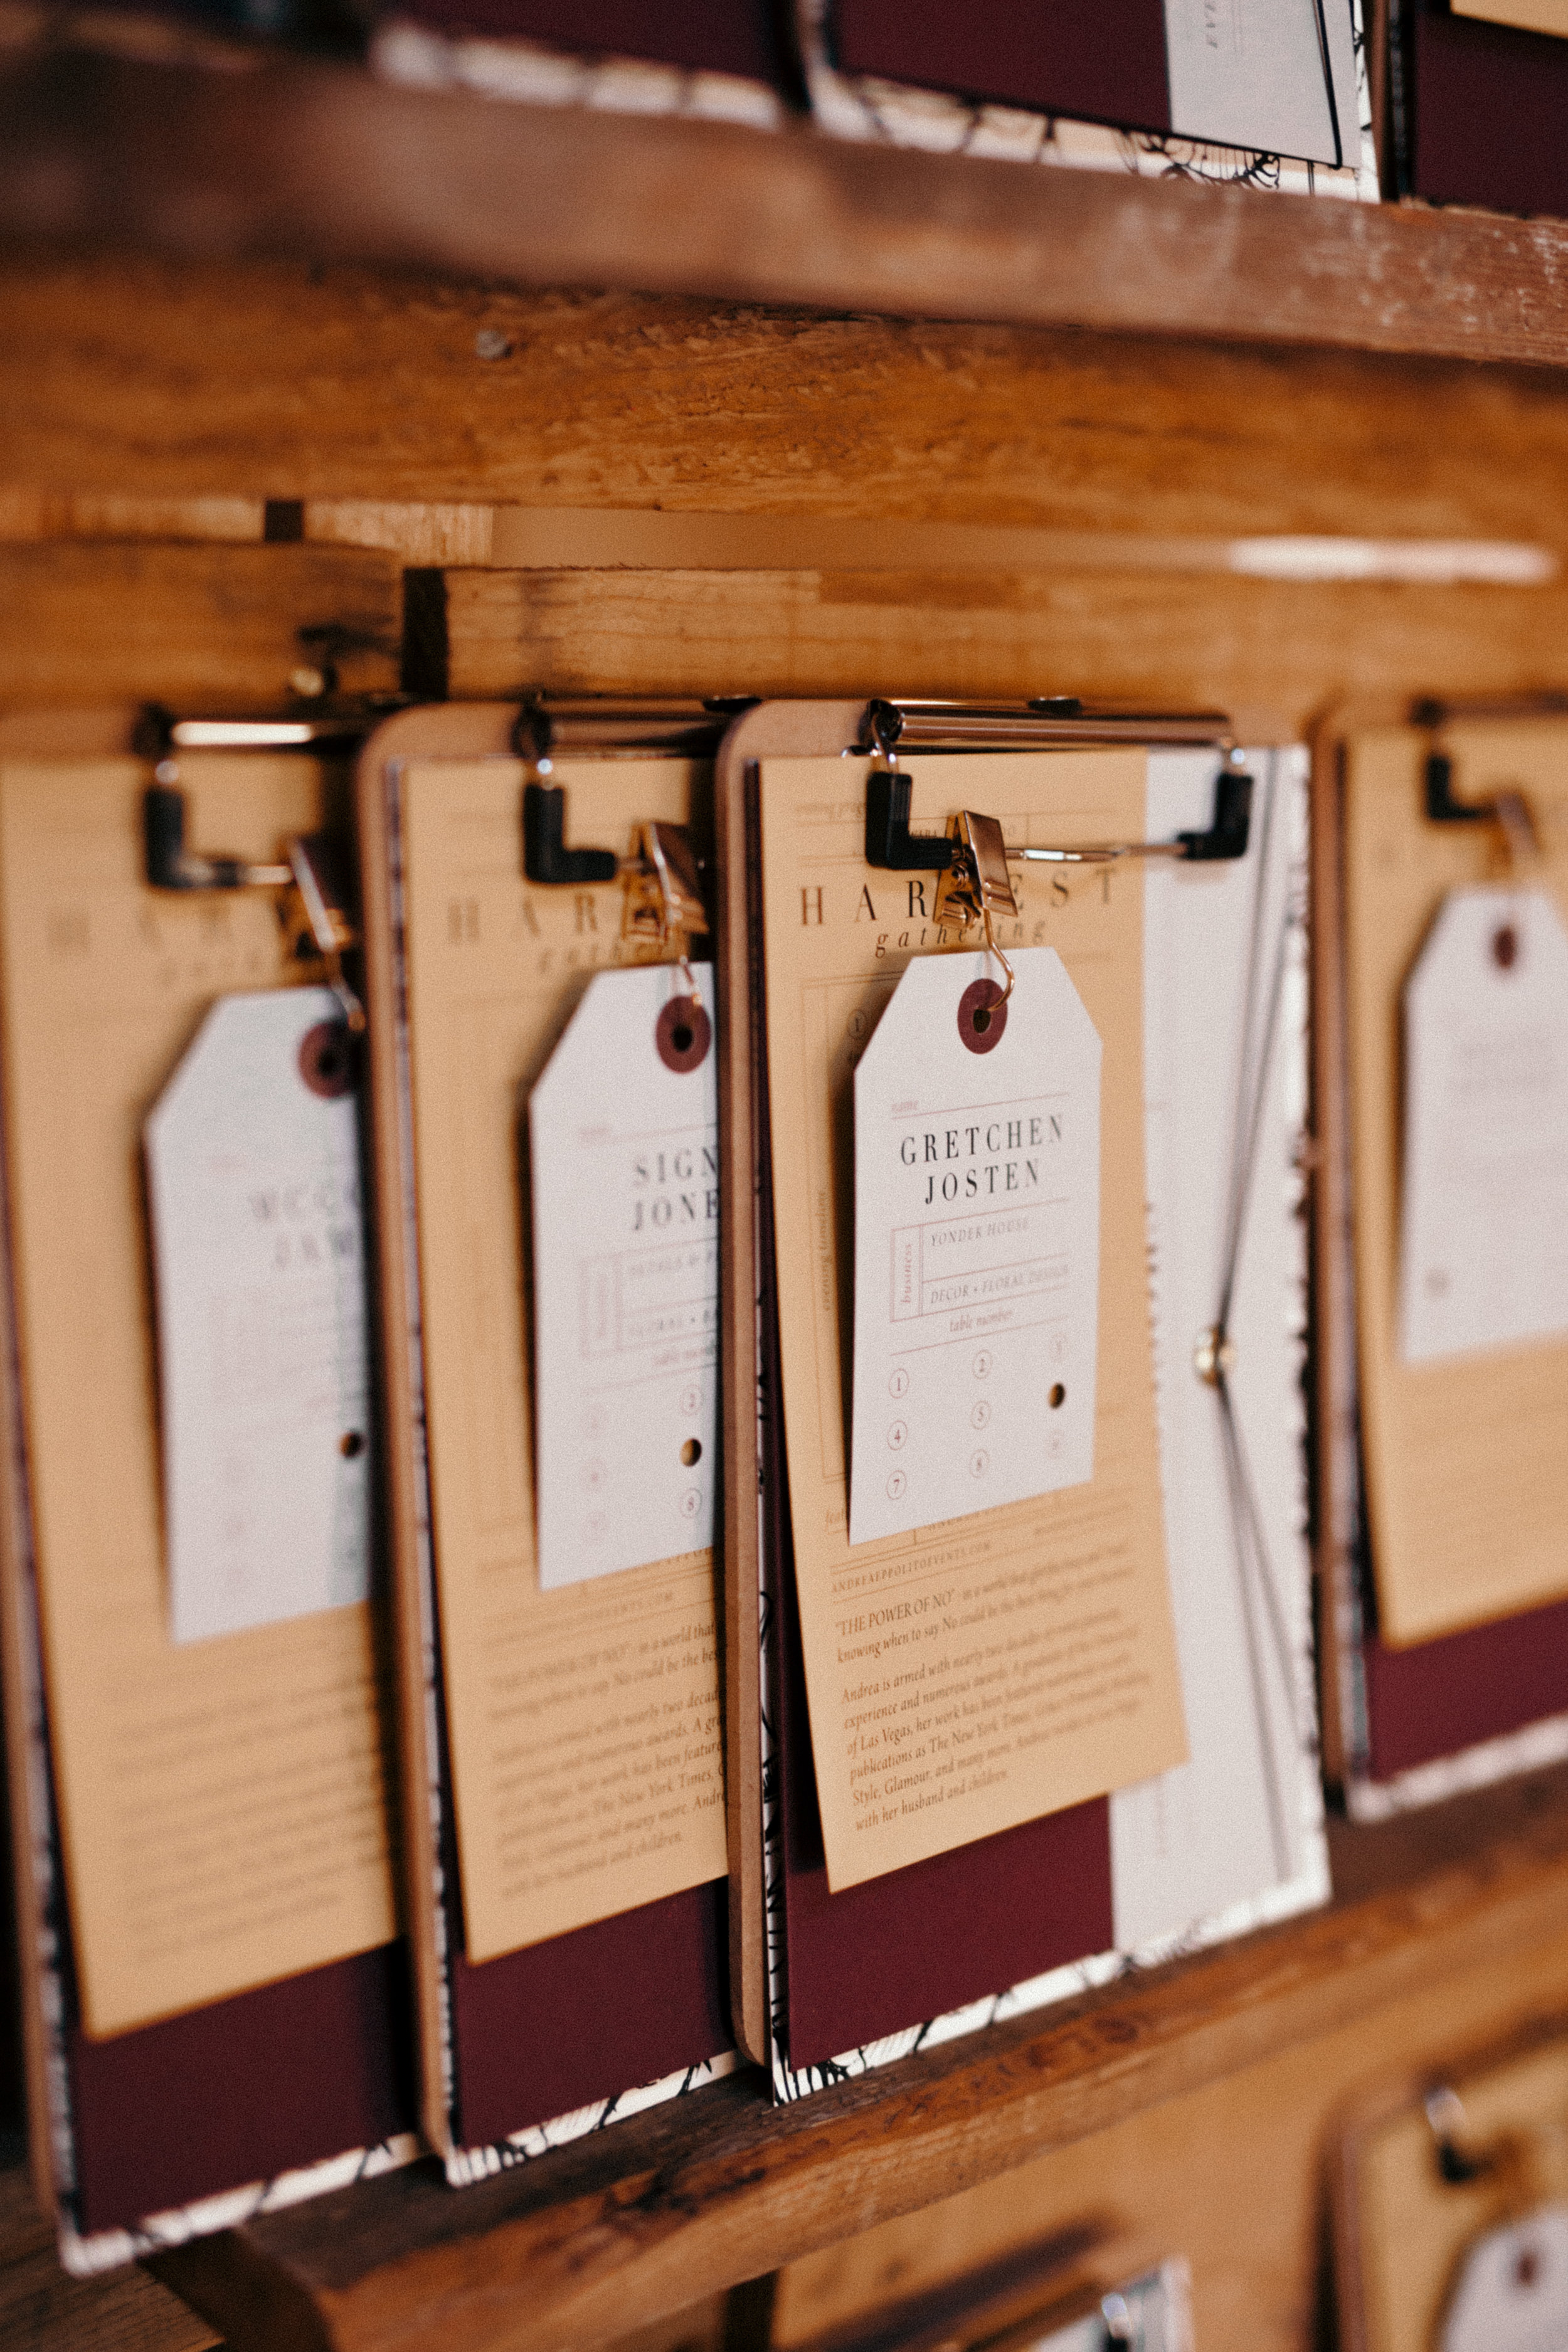 Each escort clipboard included a list of the event sponsors, detailed itinerary for the evening and an hole punched escort card with seat information.